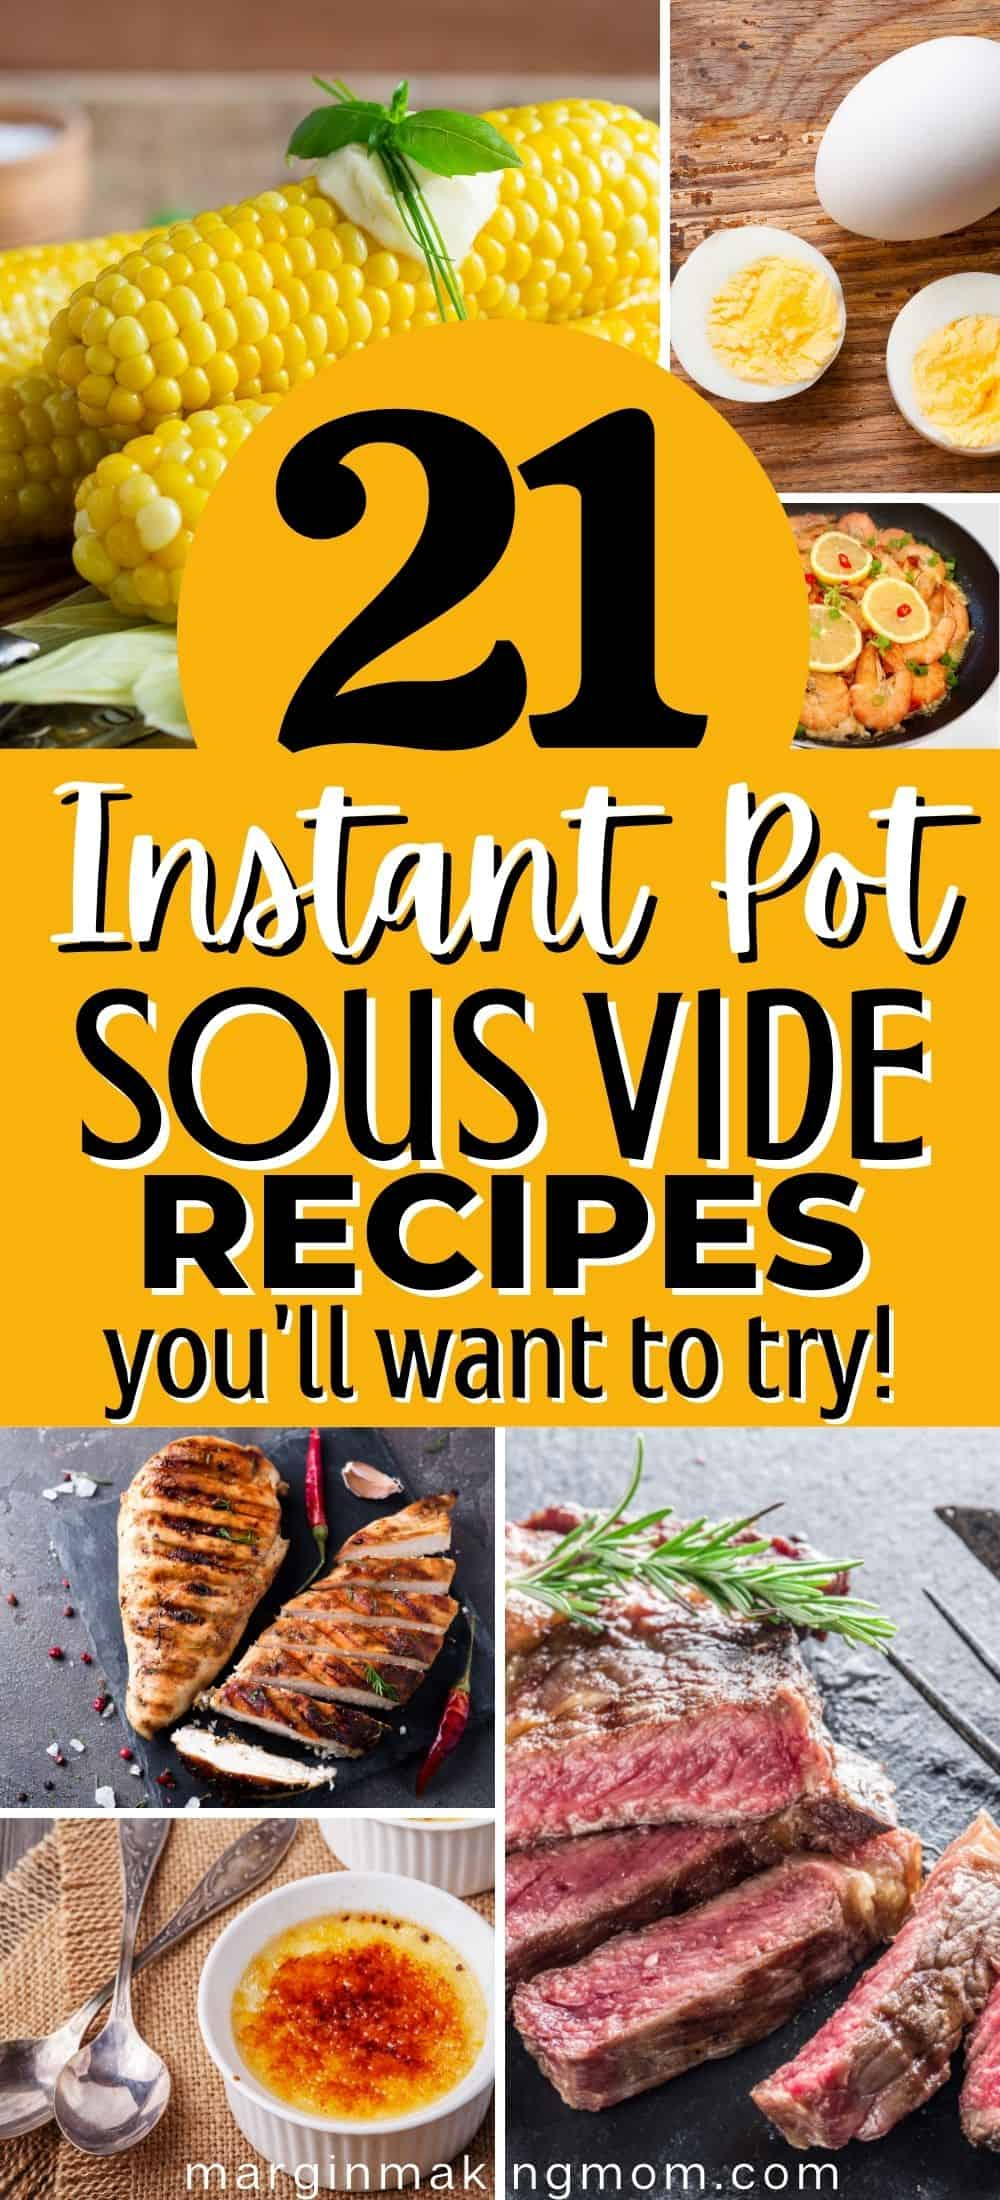 collage image featuring various foods that can be cooked using the Instant Pot sous vide function